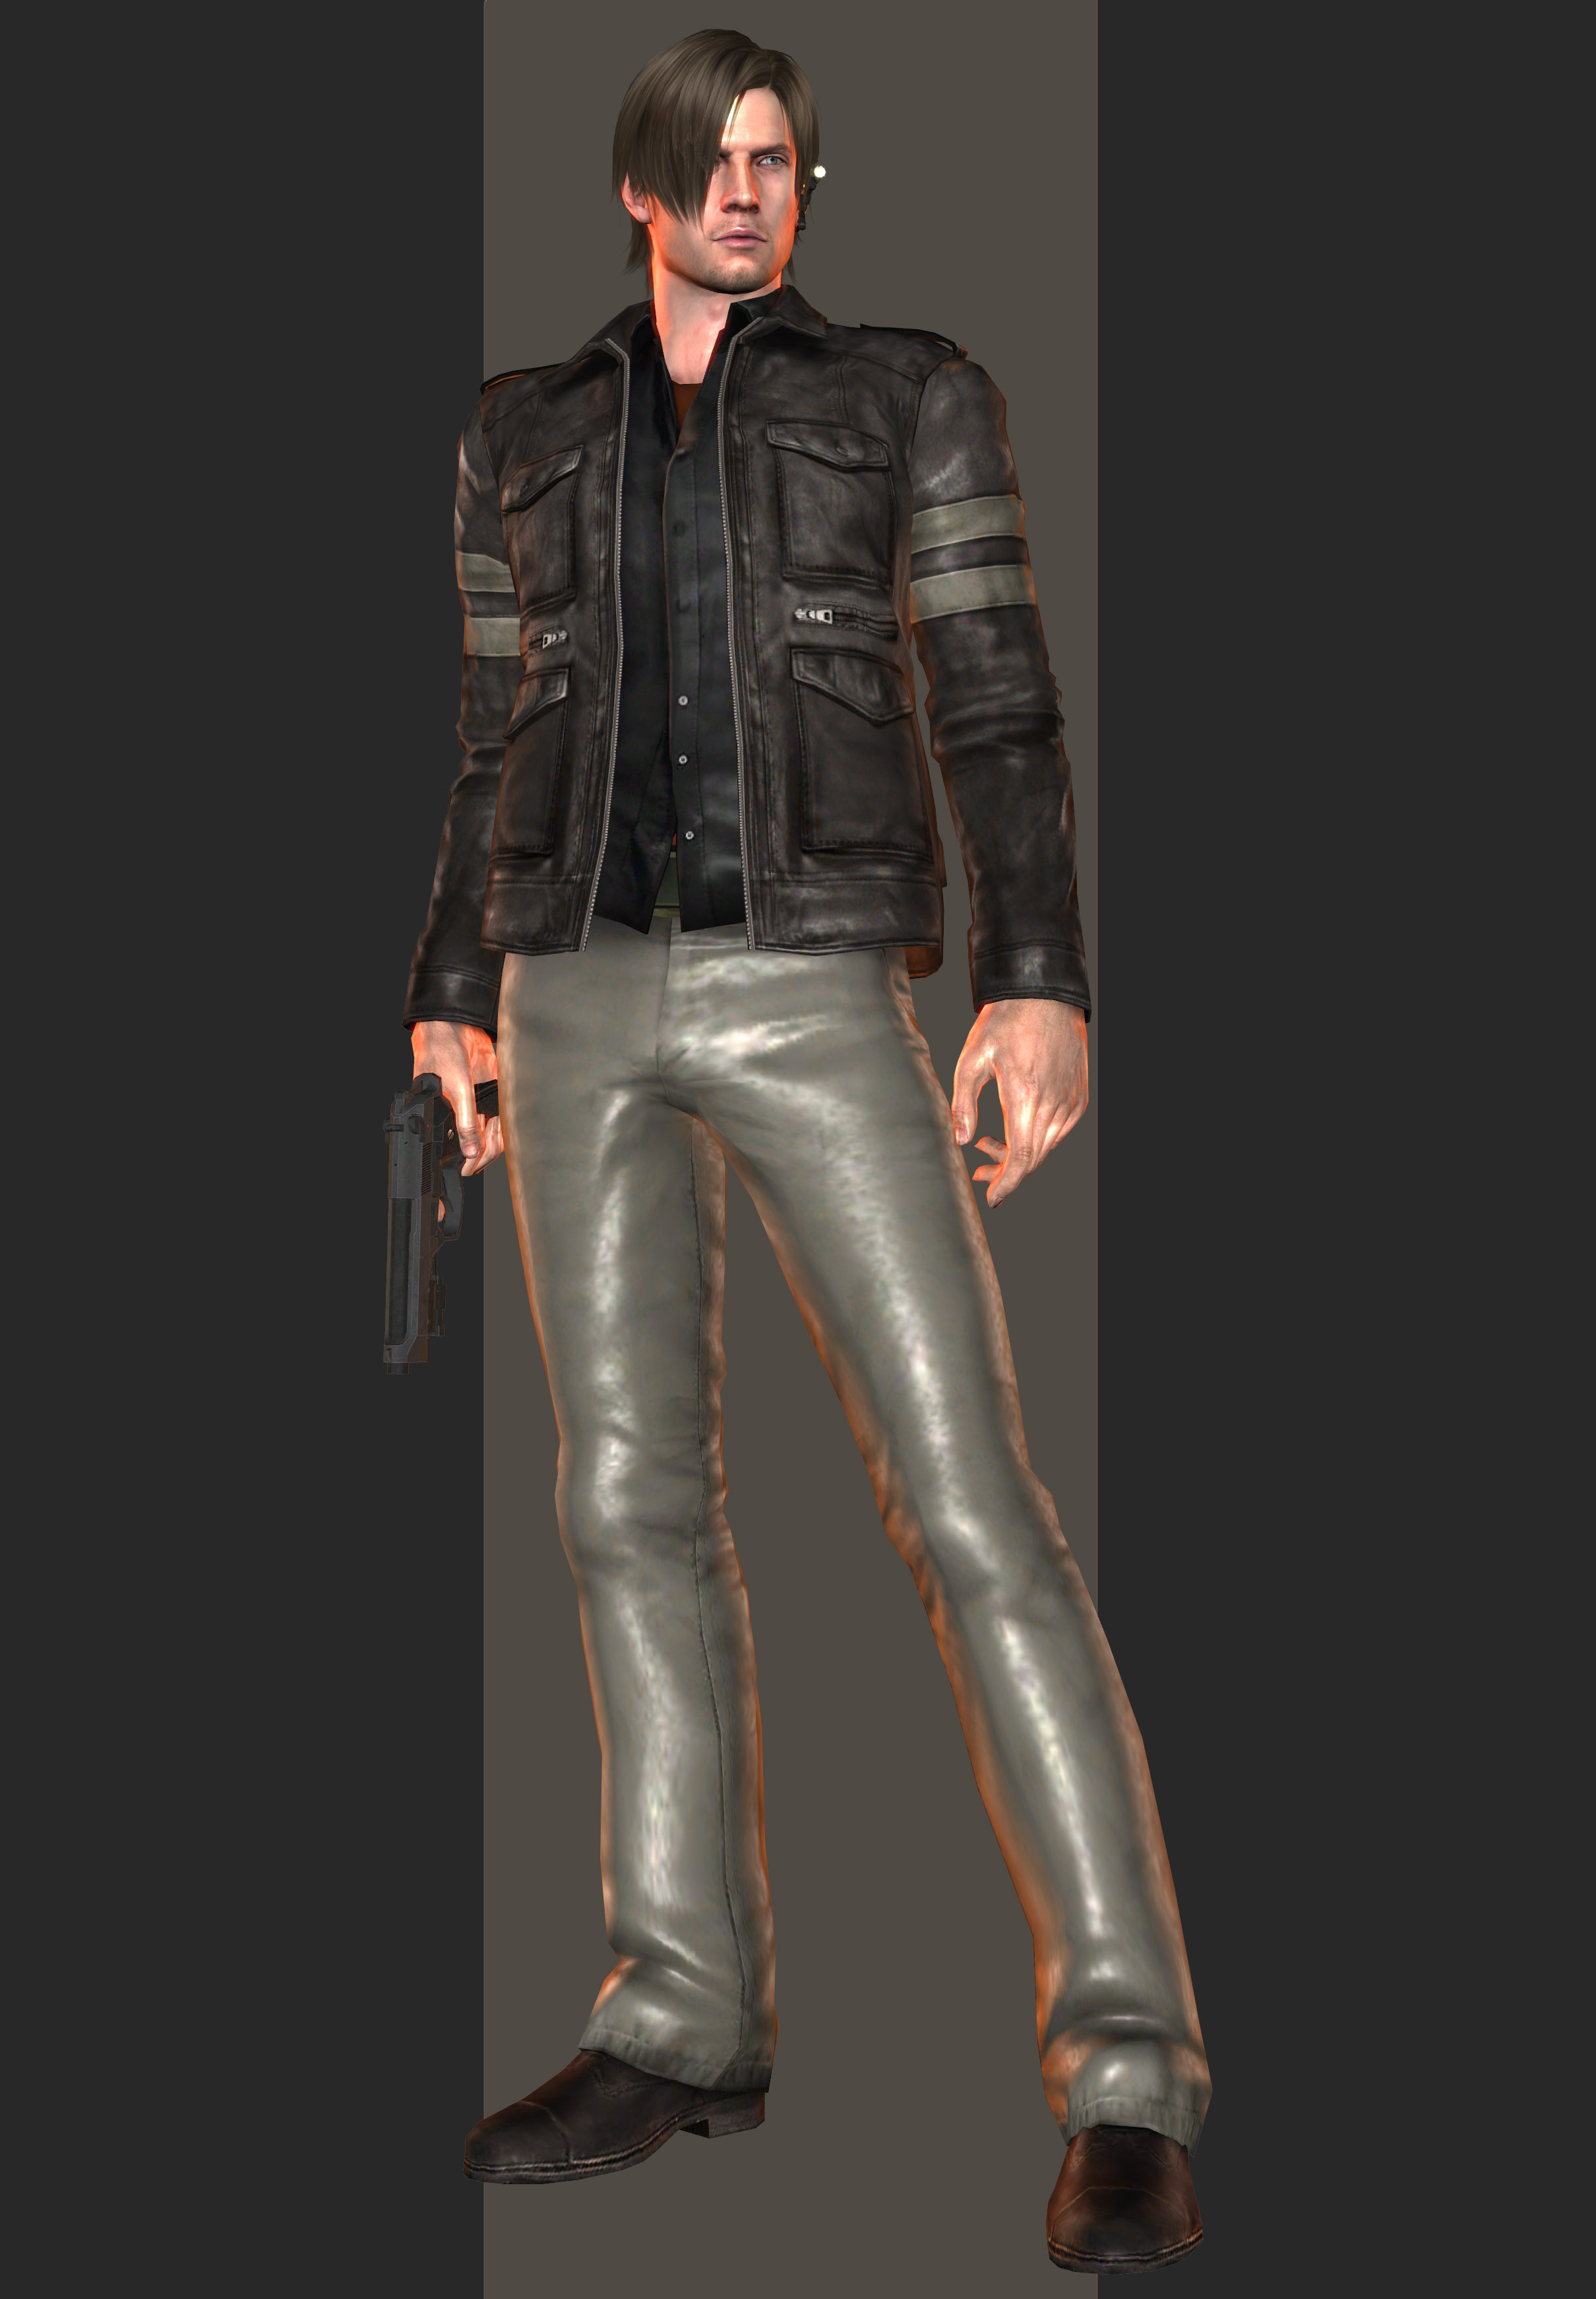 Xps Re6 Leon S Kennedy Tall Oaks Outfit By Henryque999 On